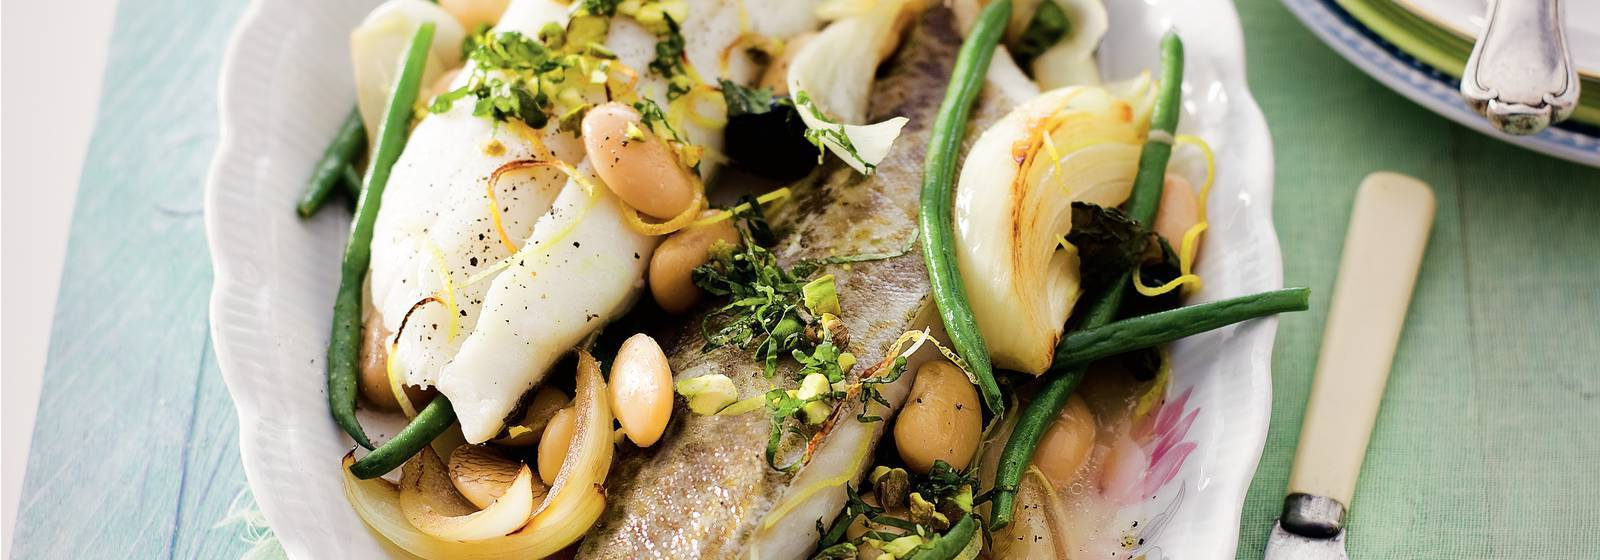 Cod fillet with haricots verts